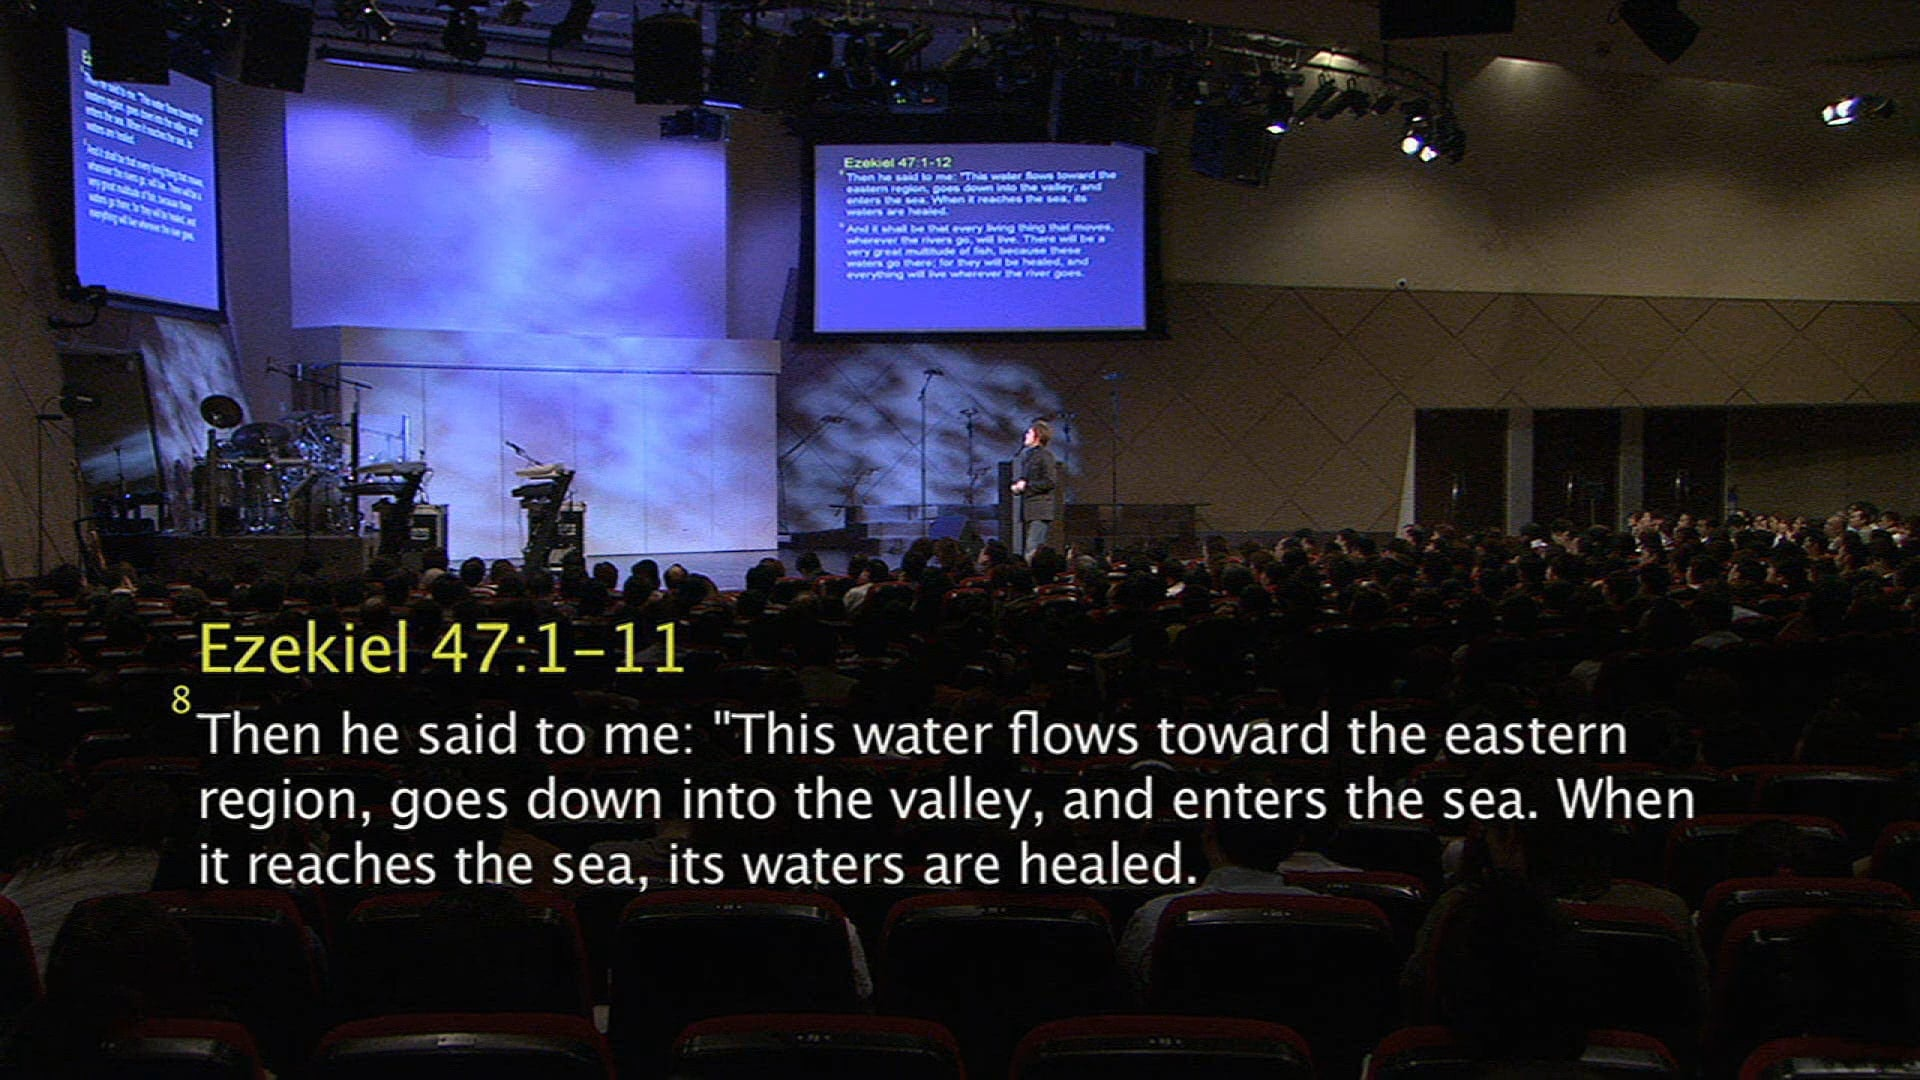 Watch The Spirit's Rivers of Provision and Healing Part 2